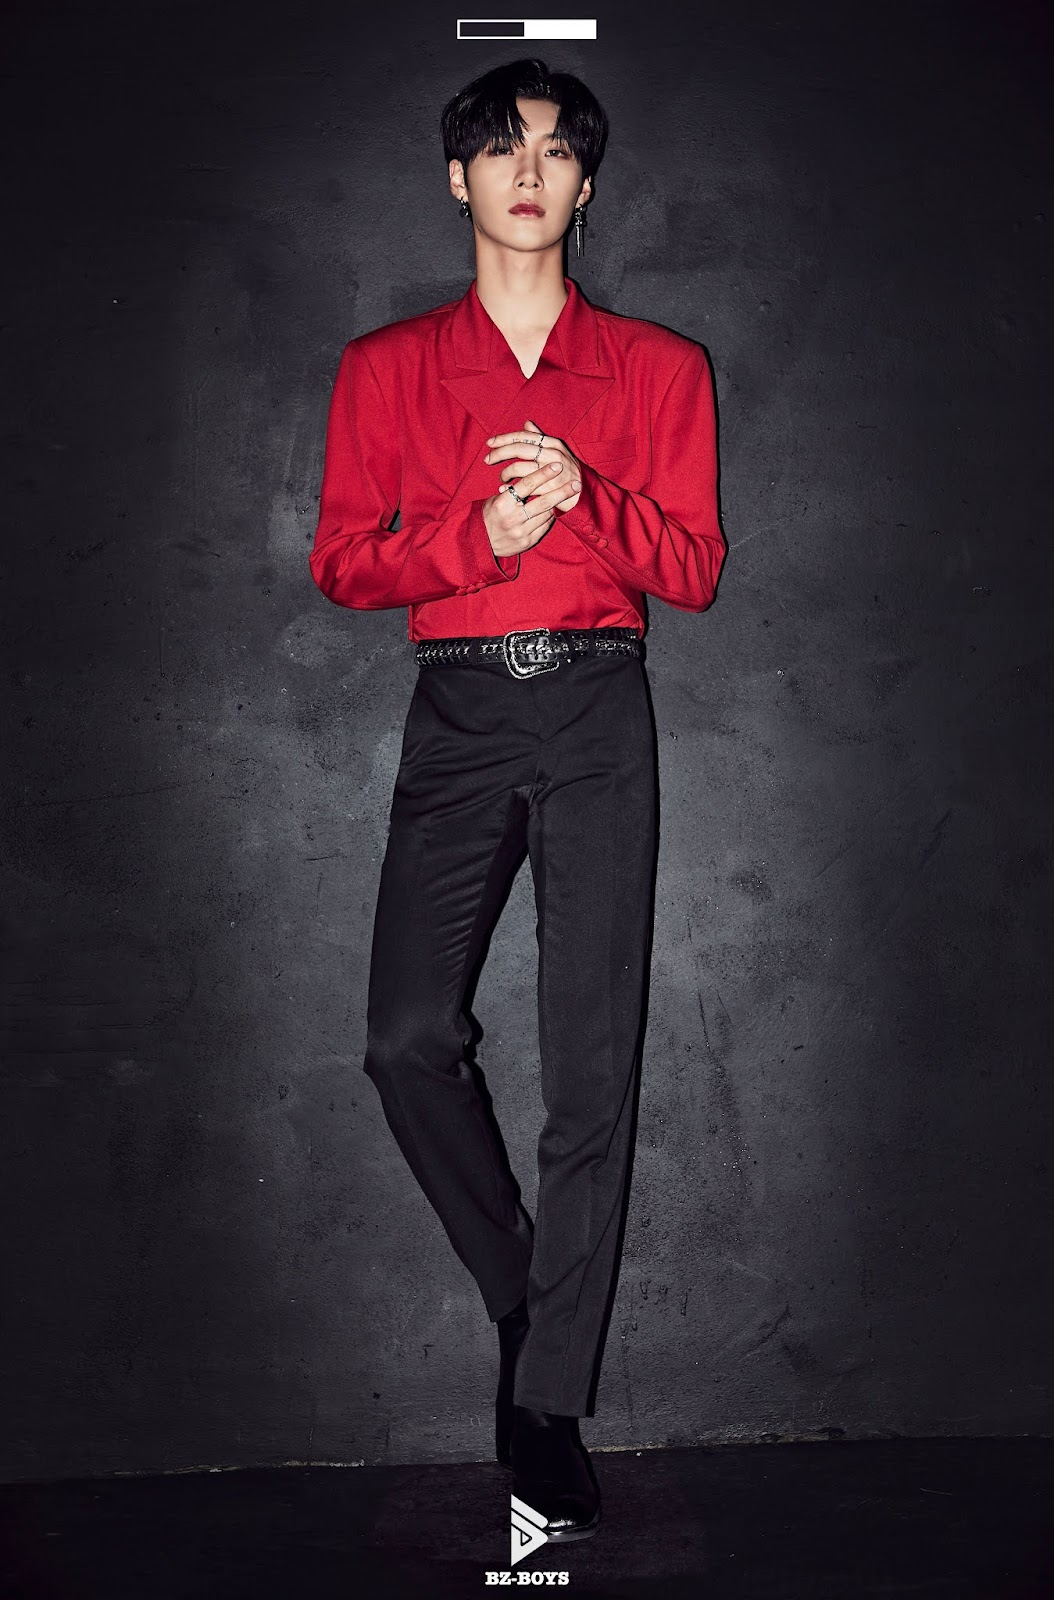 bz-boys contrast taewoong